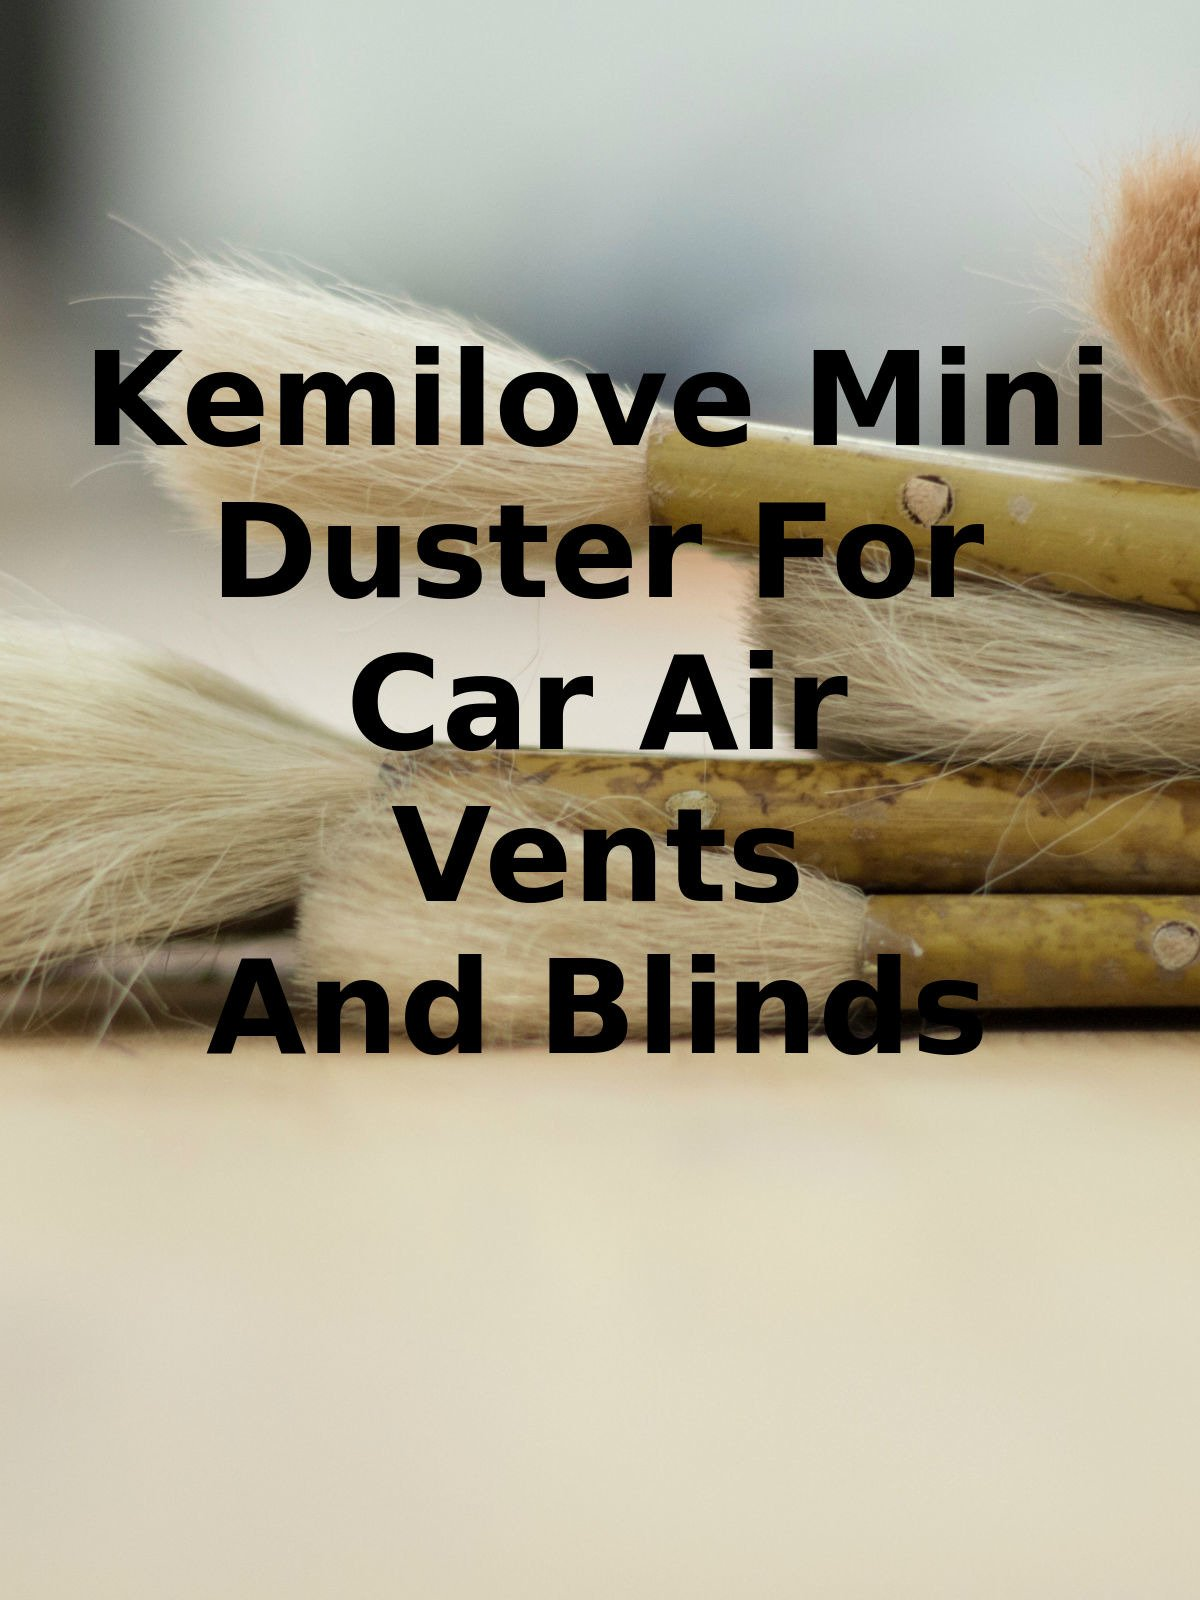 Review: Kemilove Mini Duster For Car Air Vents And Blinds